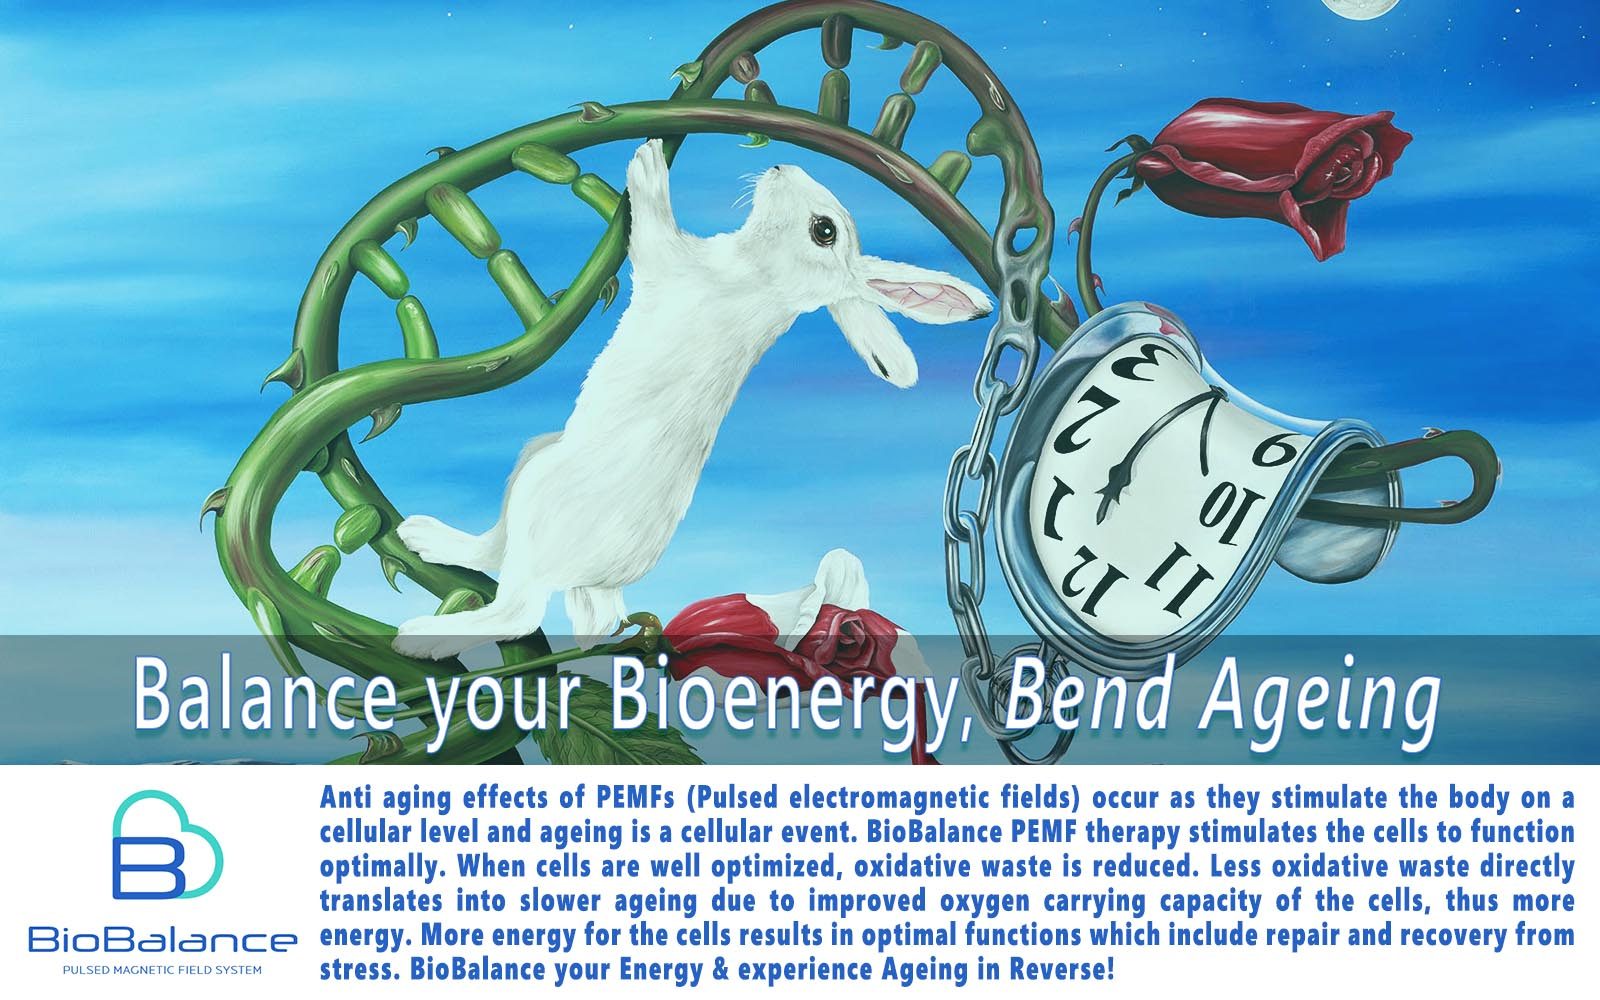 PEMF therapy for anti-aging and longevity